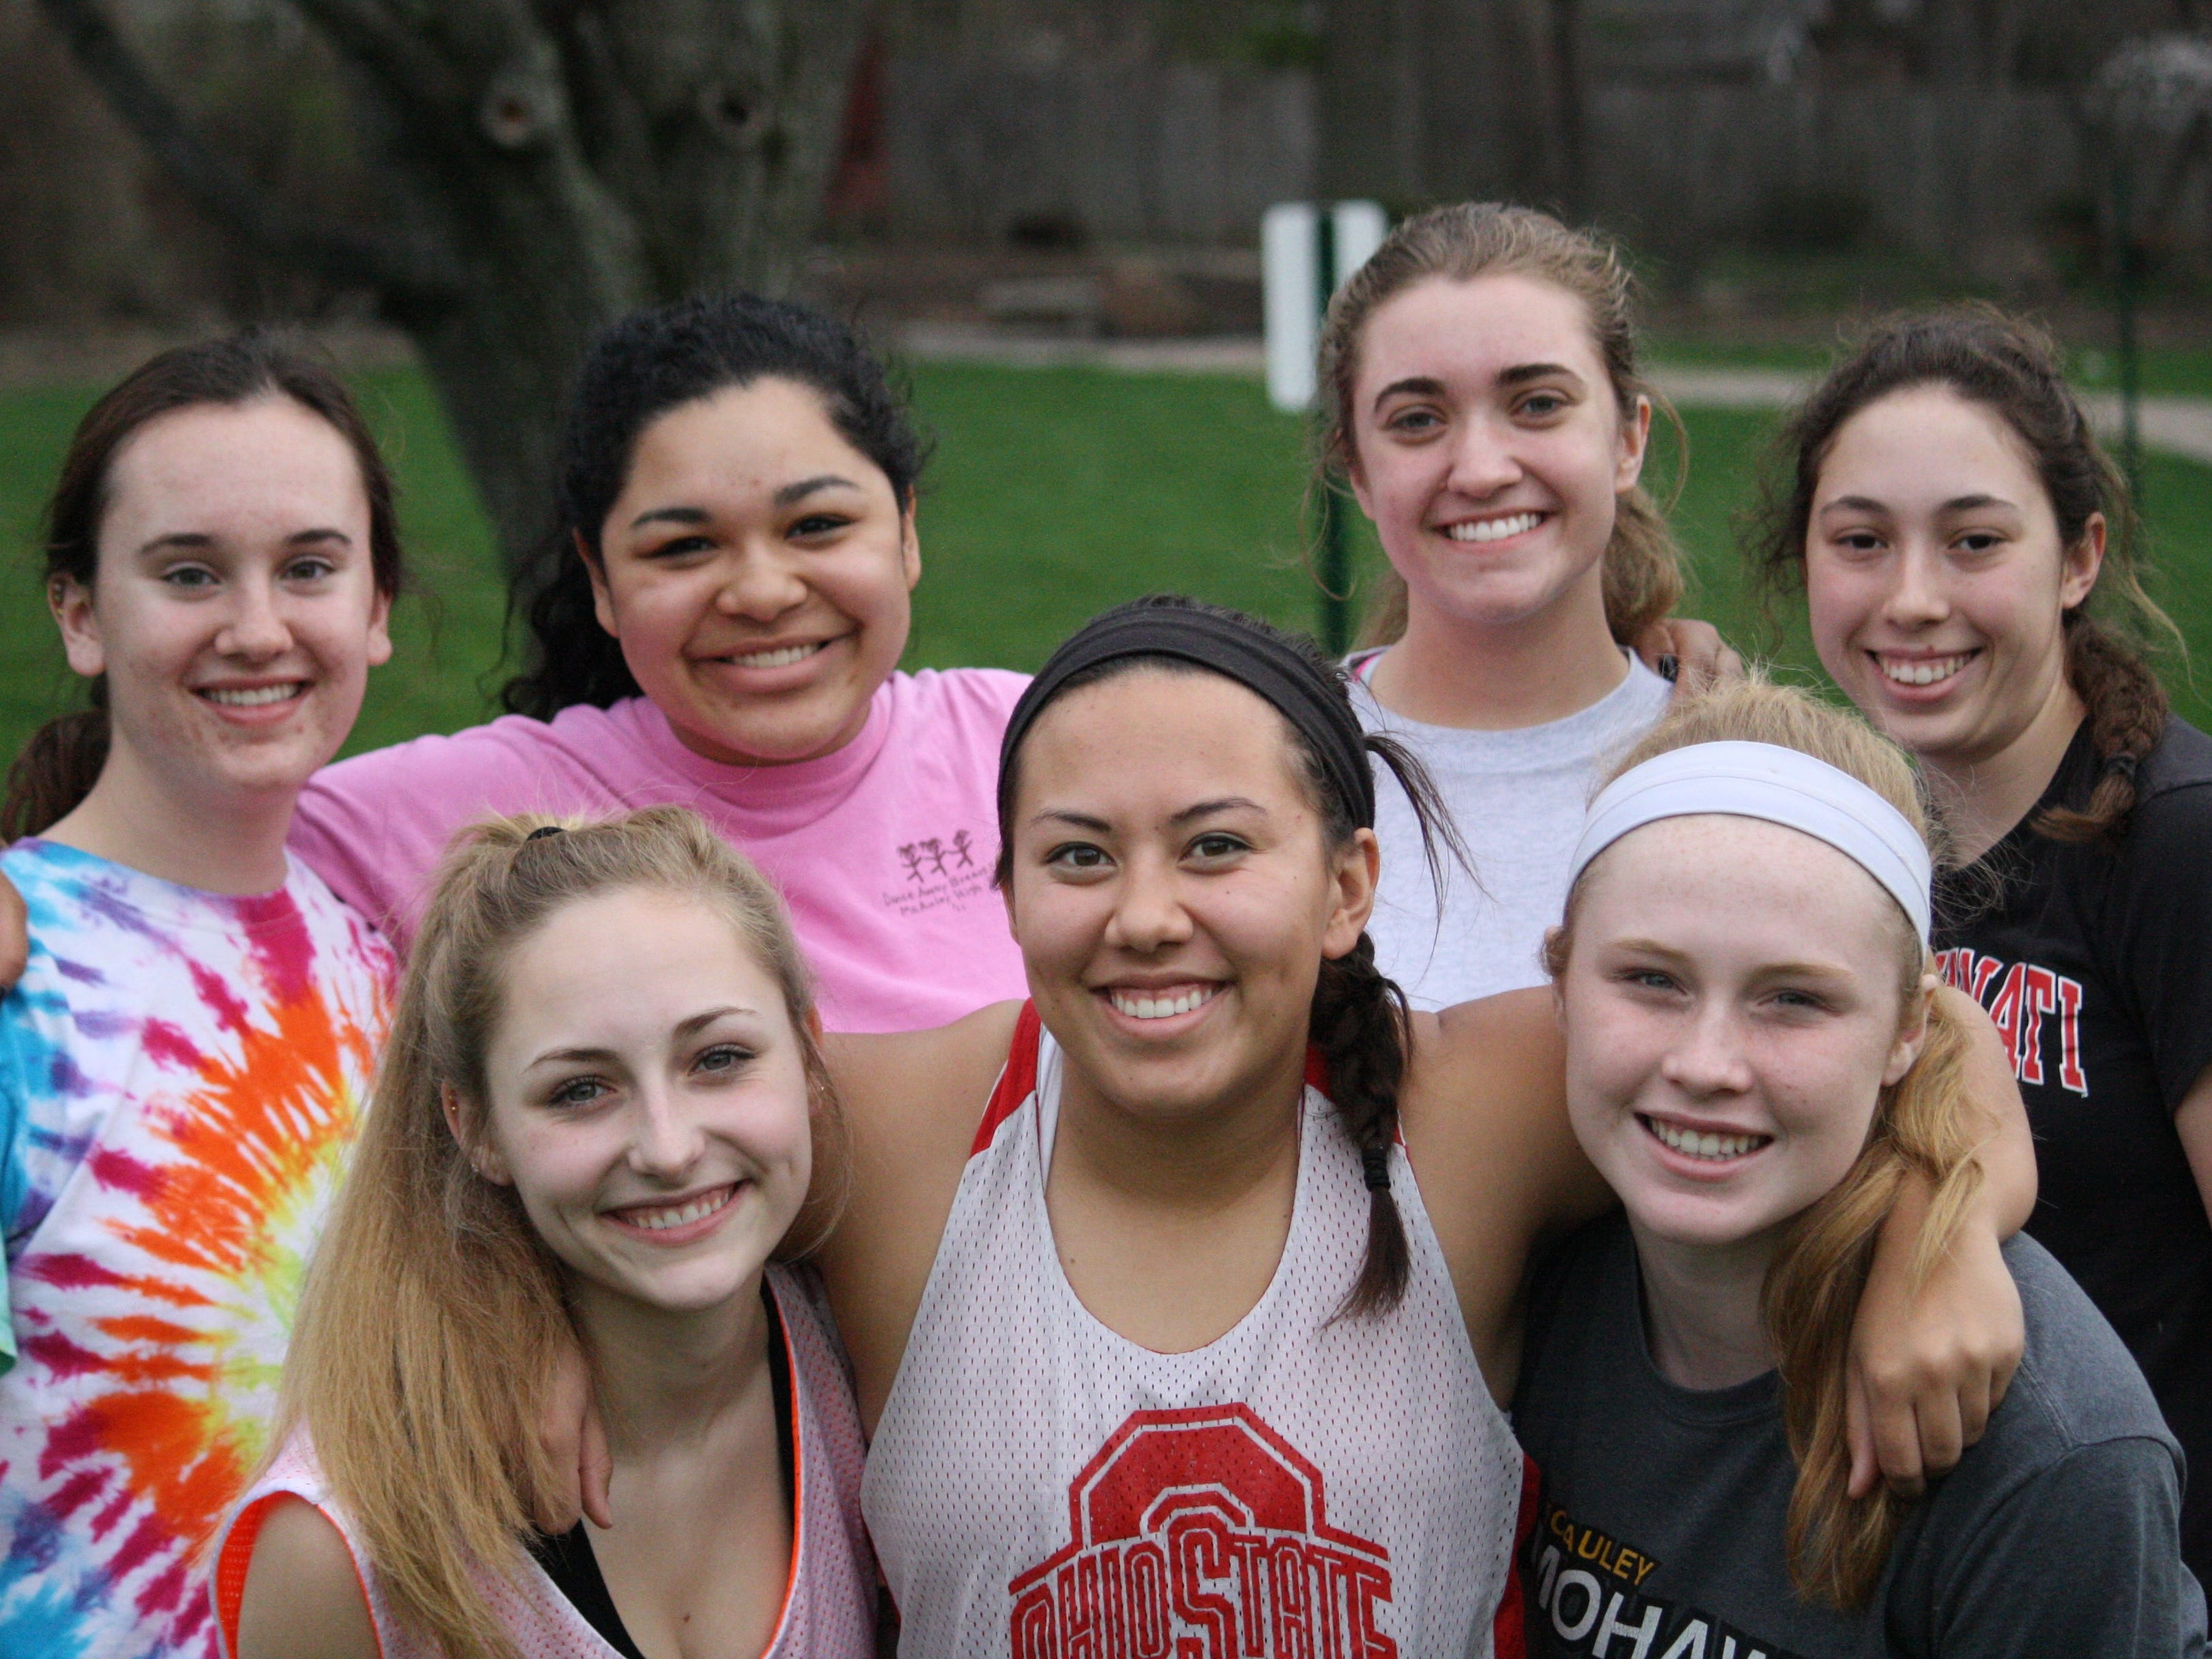 McAuley's 2015 senior lacrosse players from left (in back): Emma Pierani, Osmari Novoa, Emma Curnutte and Maria Koenig; (in front) Jessica Ventura, Bailey Ernst and Kate Calder. Not pictured: Erika Ventura.